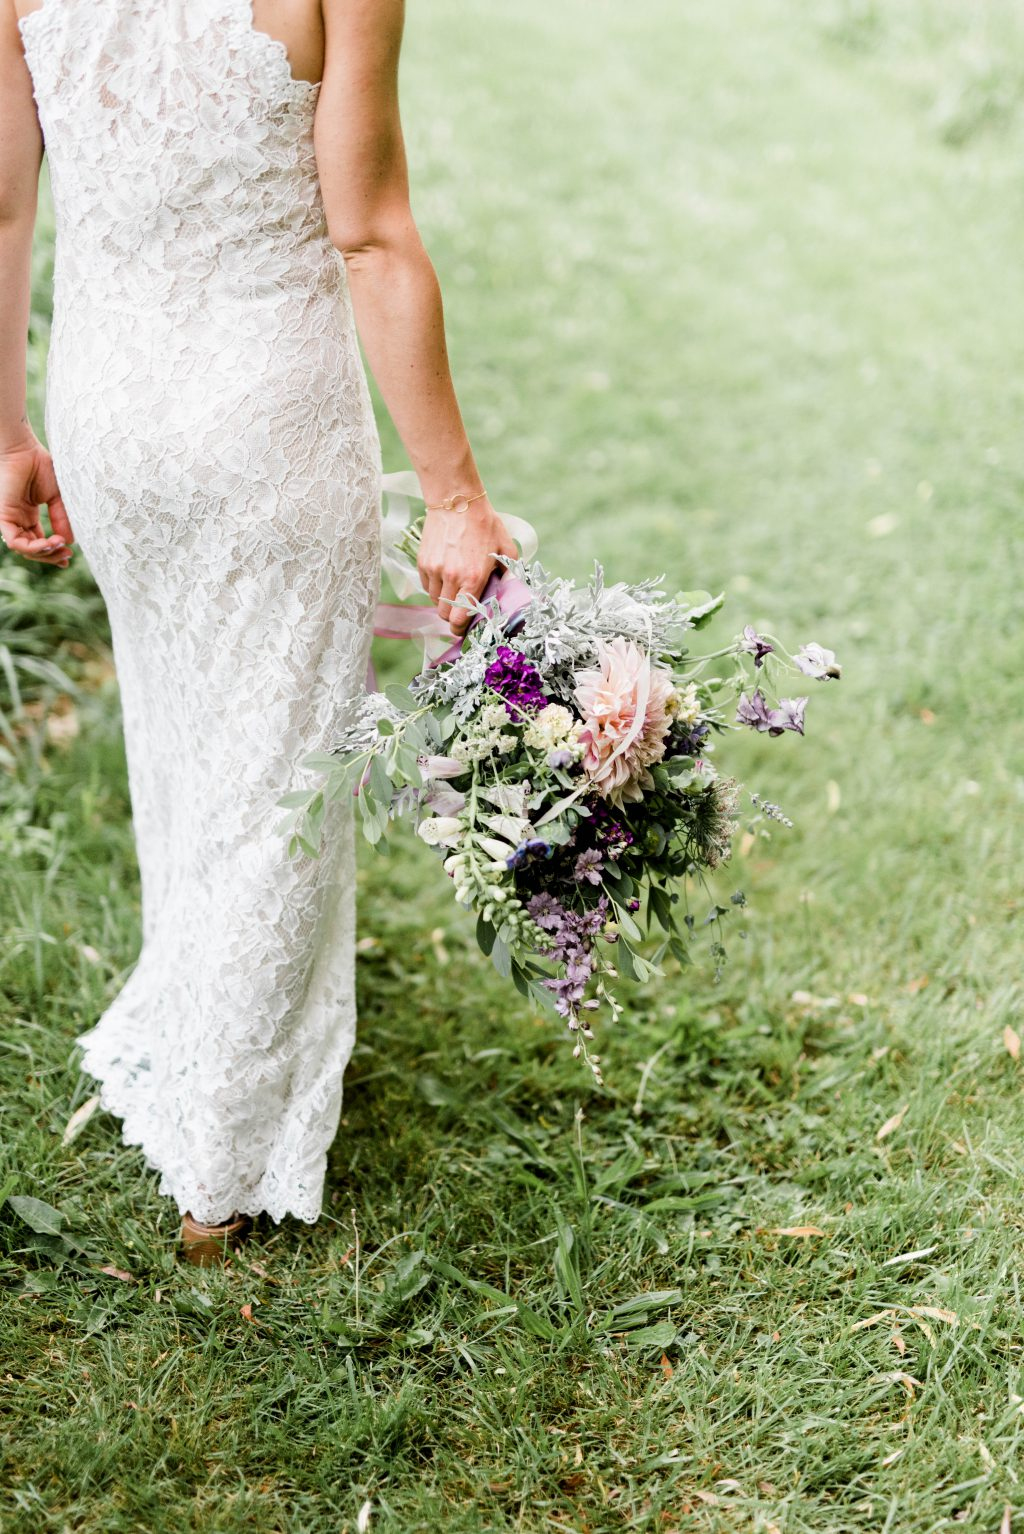 awbury-arboretum-wedding-DIY-boho-summer-haley-richter-photography-184